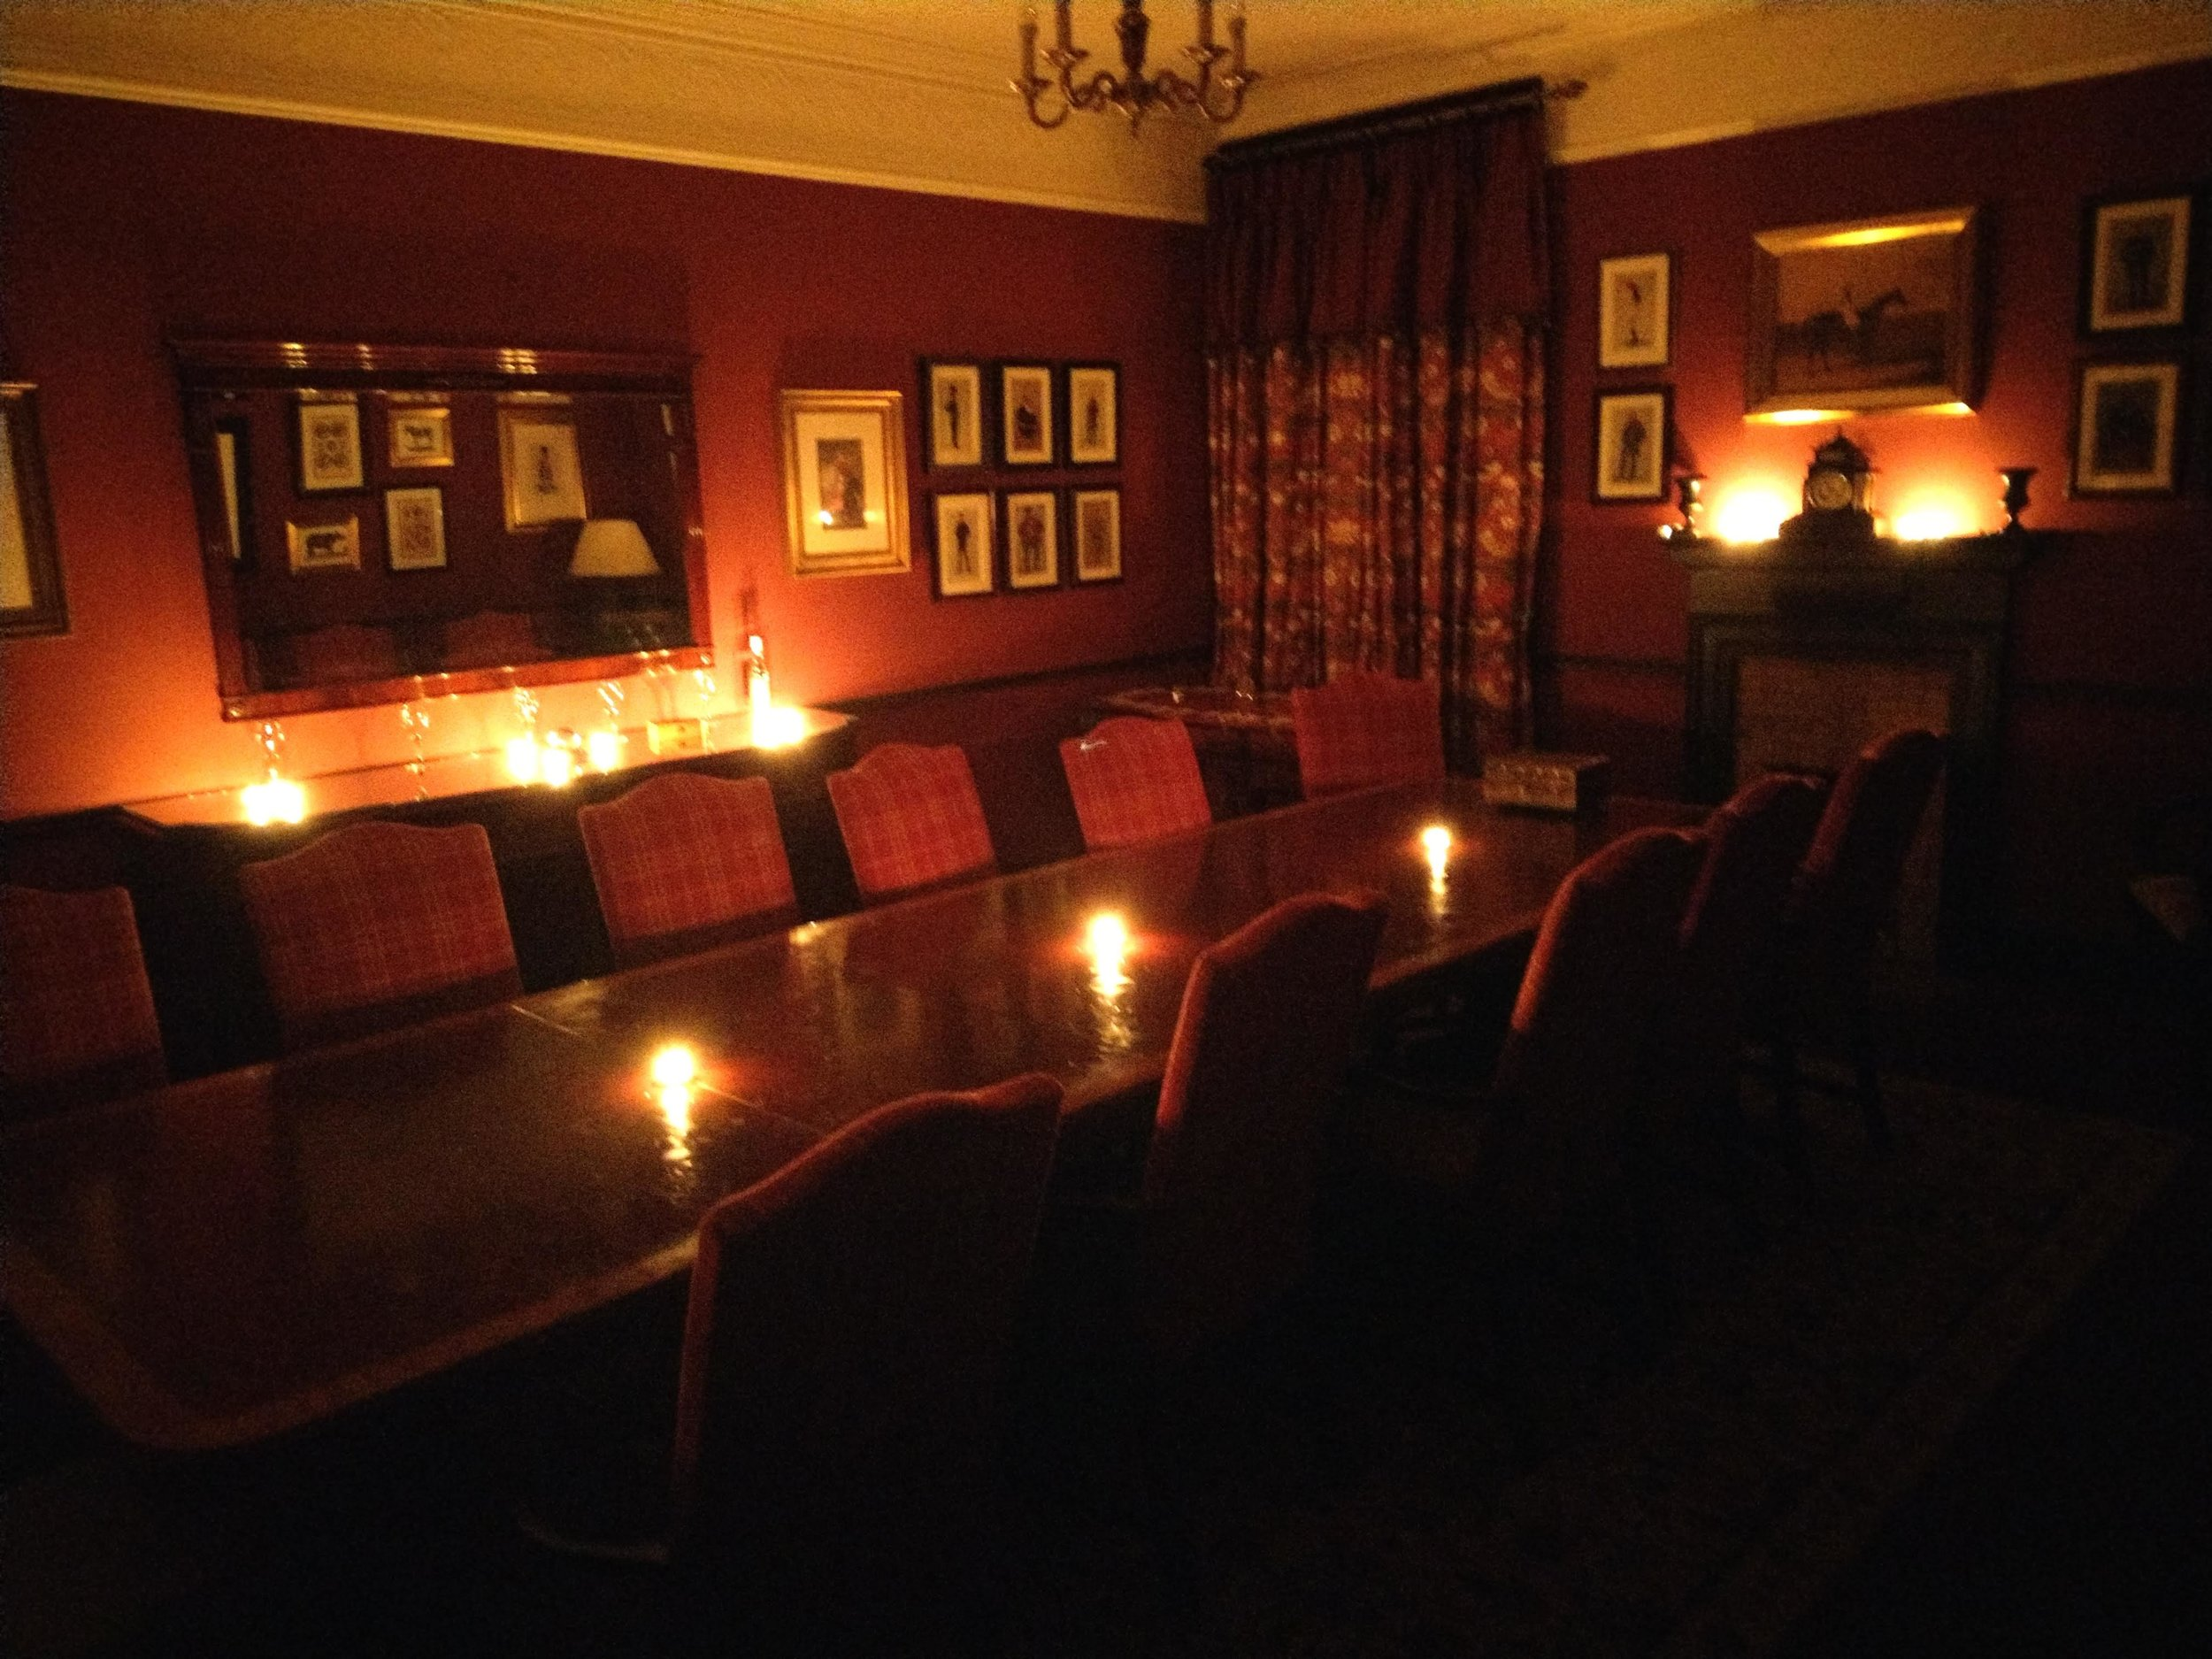 The Seance chamber